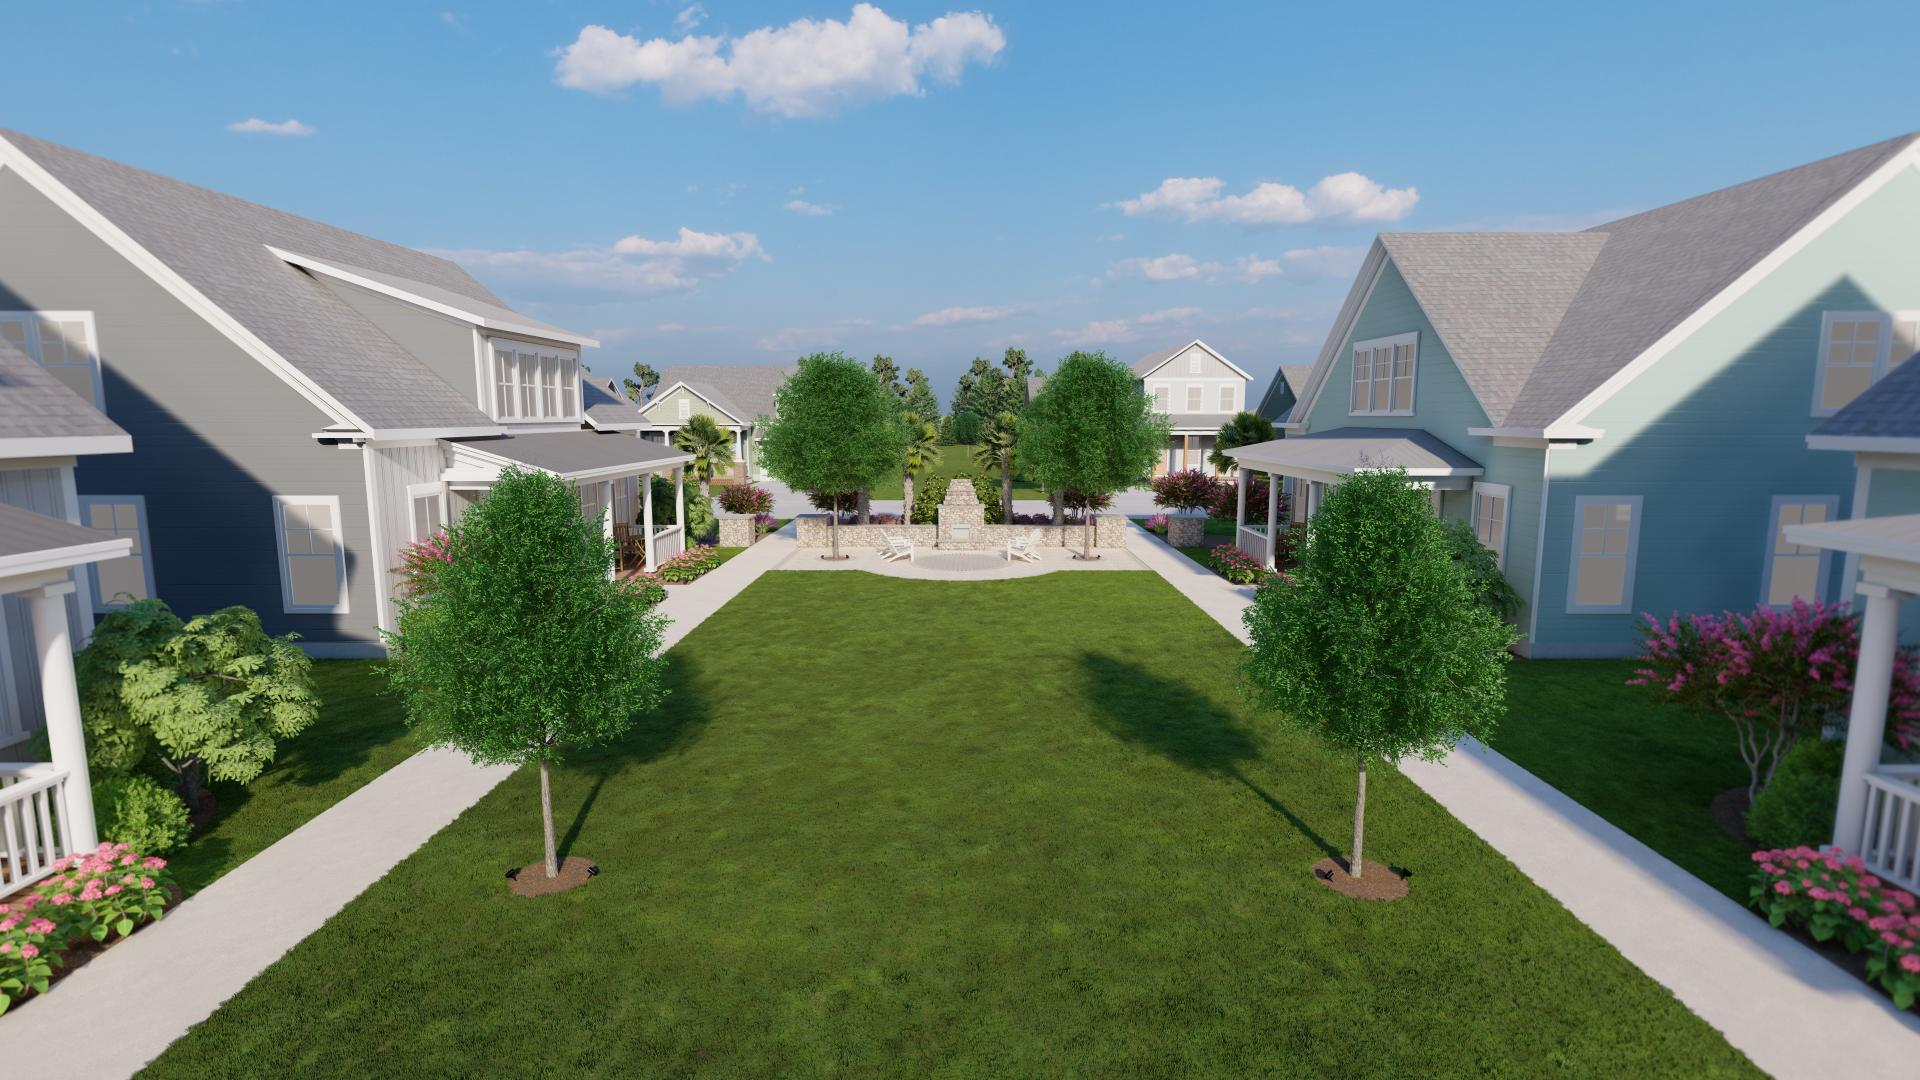 Parkview Collection greenway ideal for outdoor living